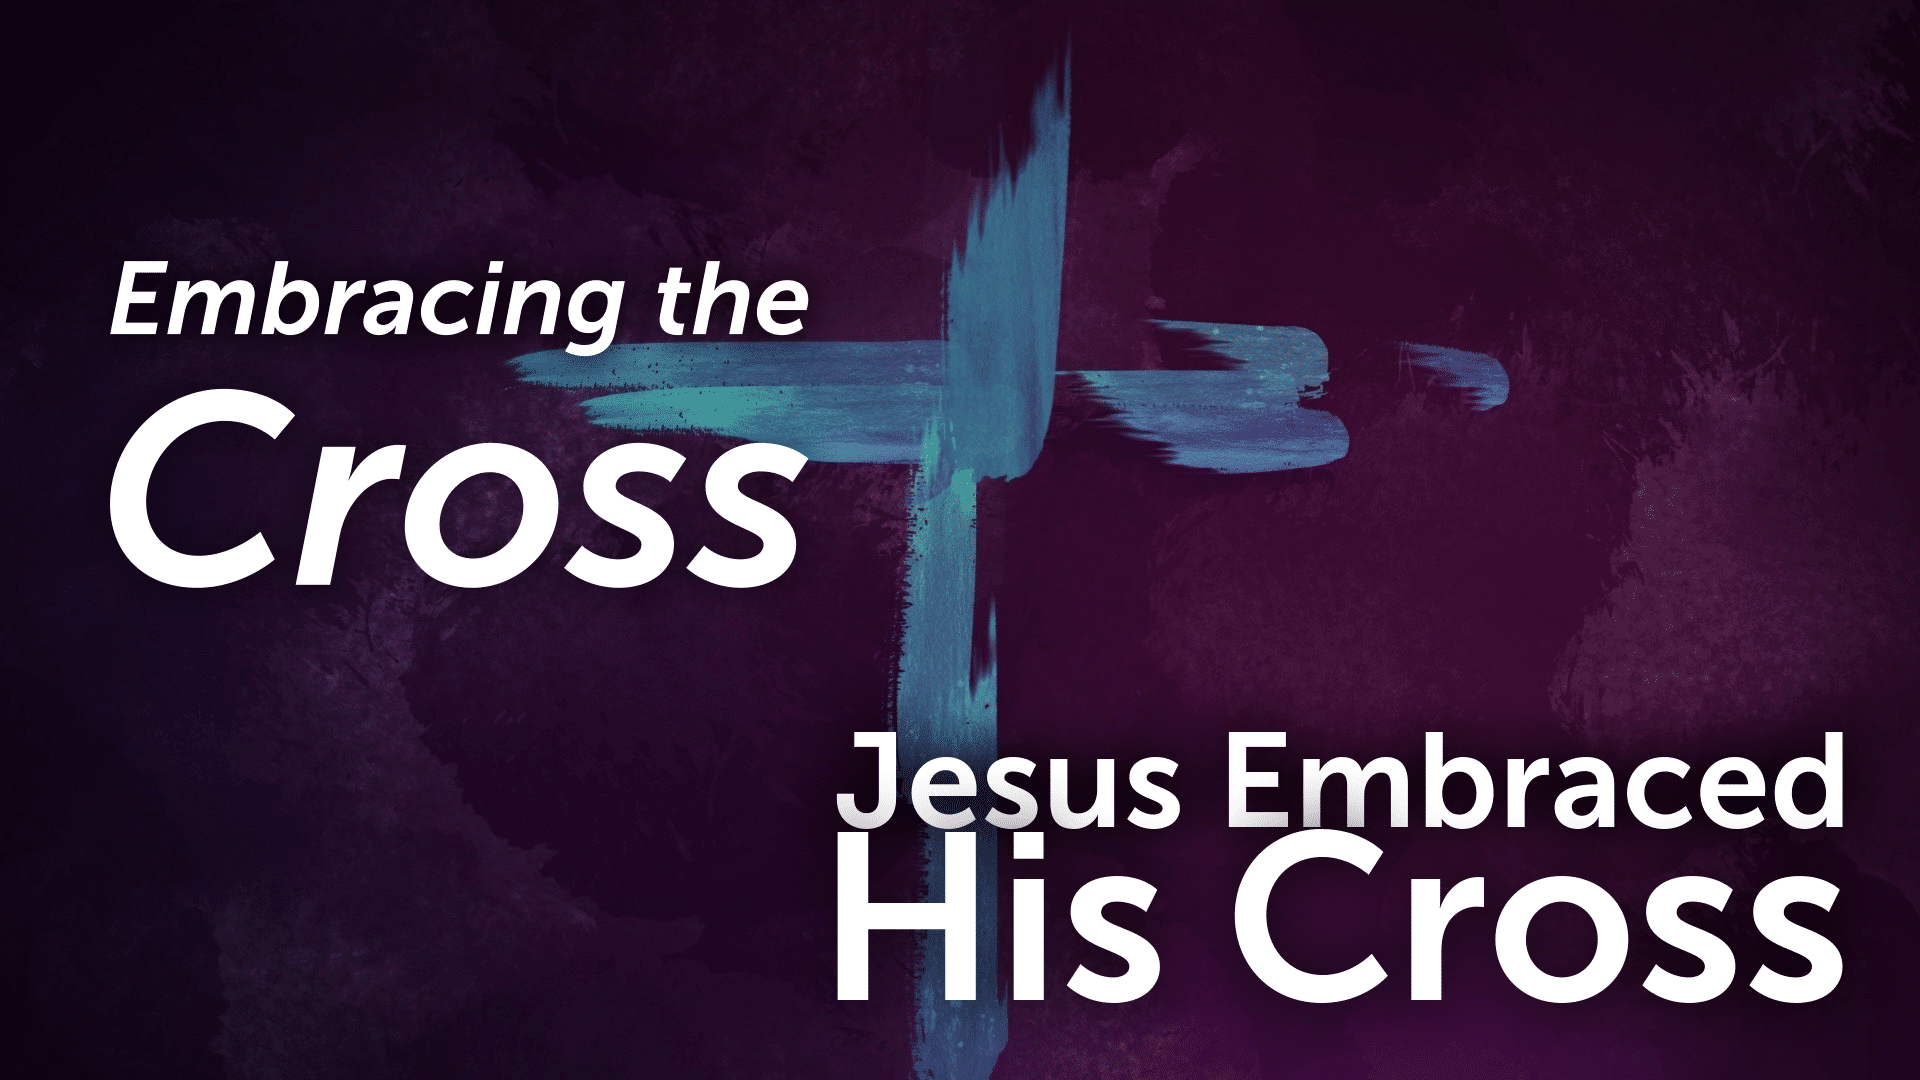 Embracing the Cross - Jesus Embraced His Cross